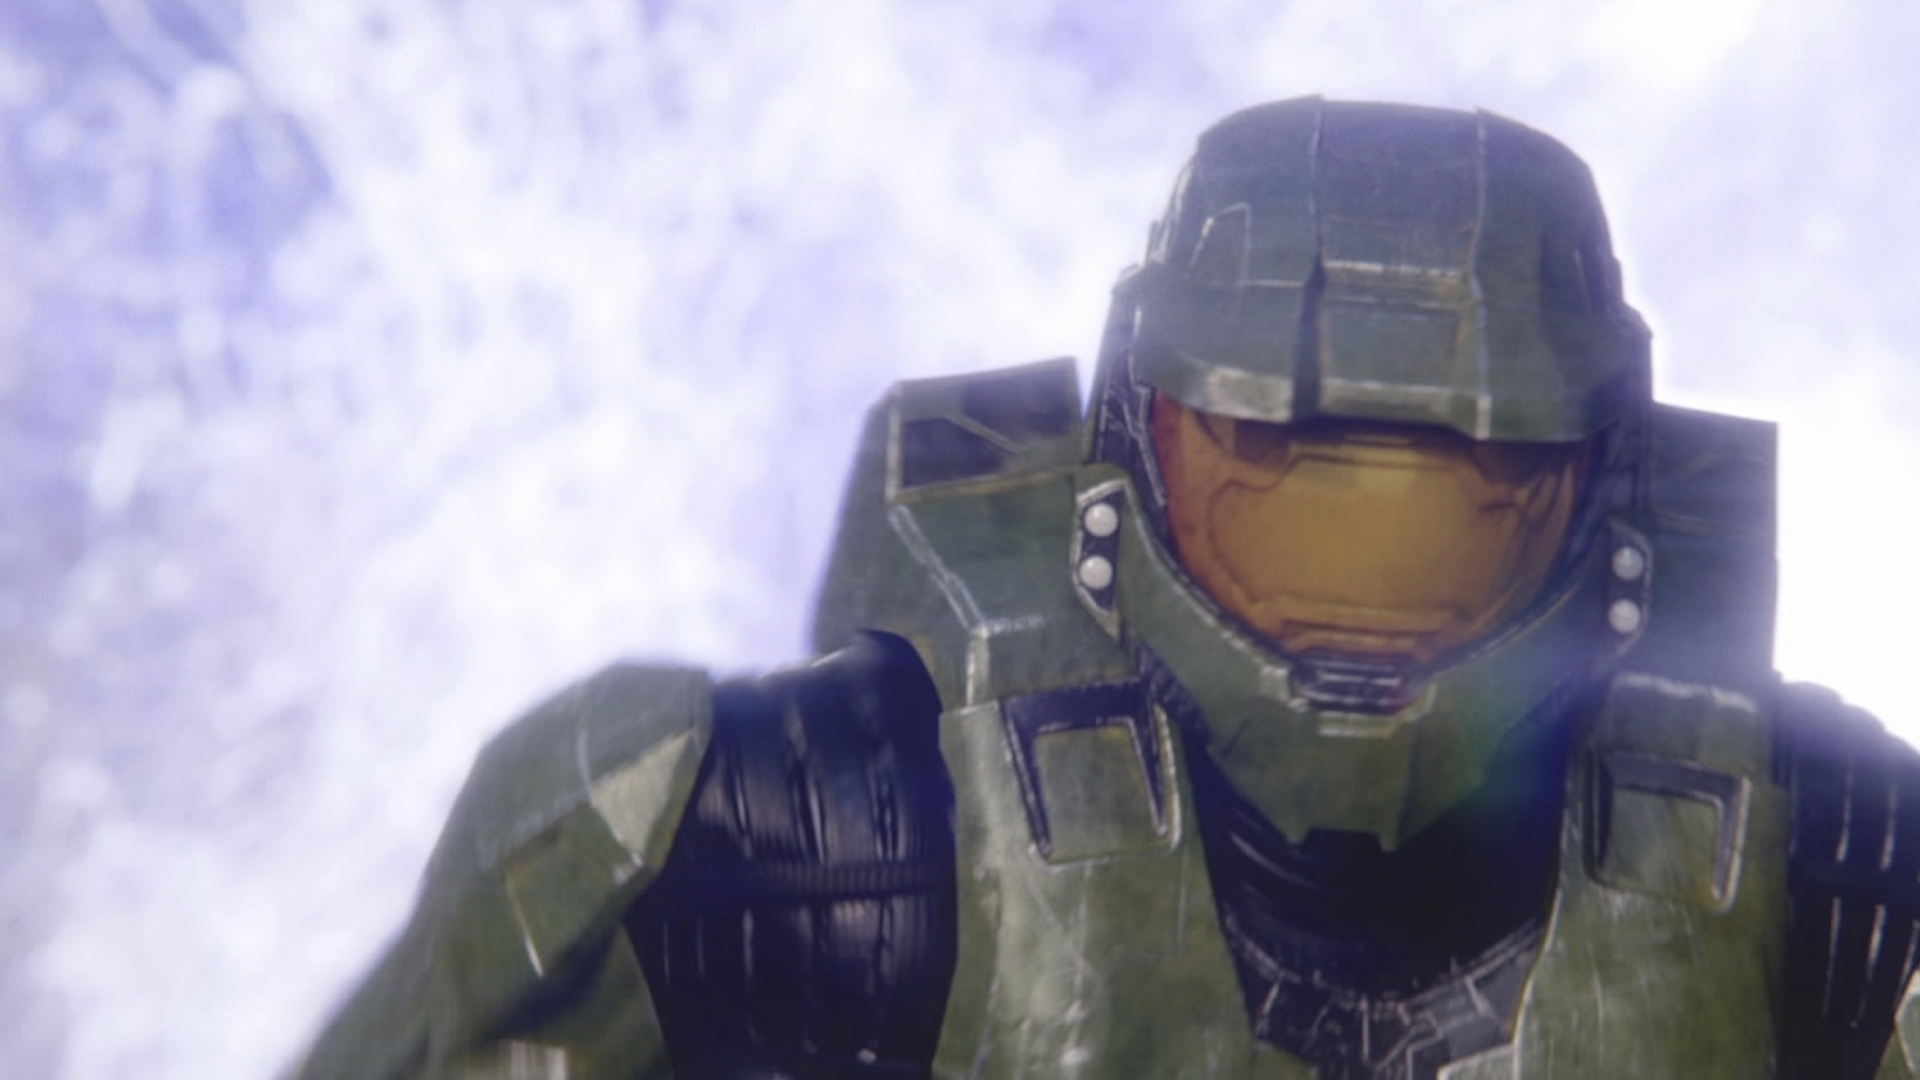 Troubleshoot Halo 5 Guardians multiplayer issues